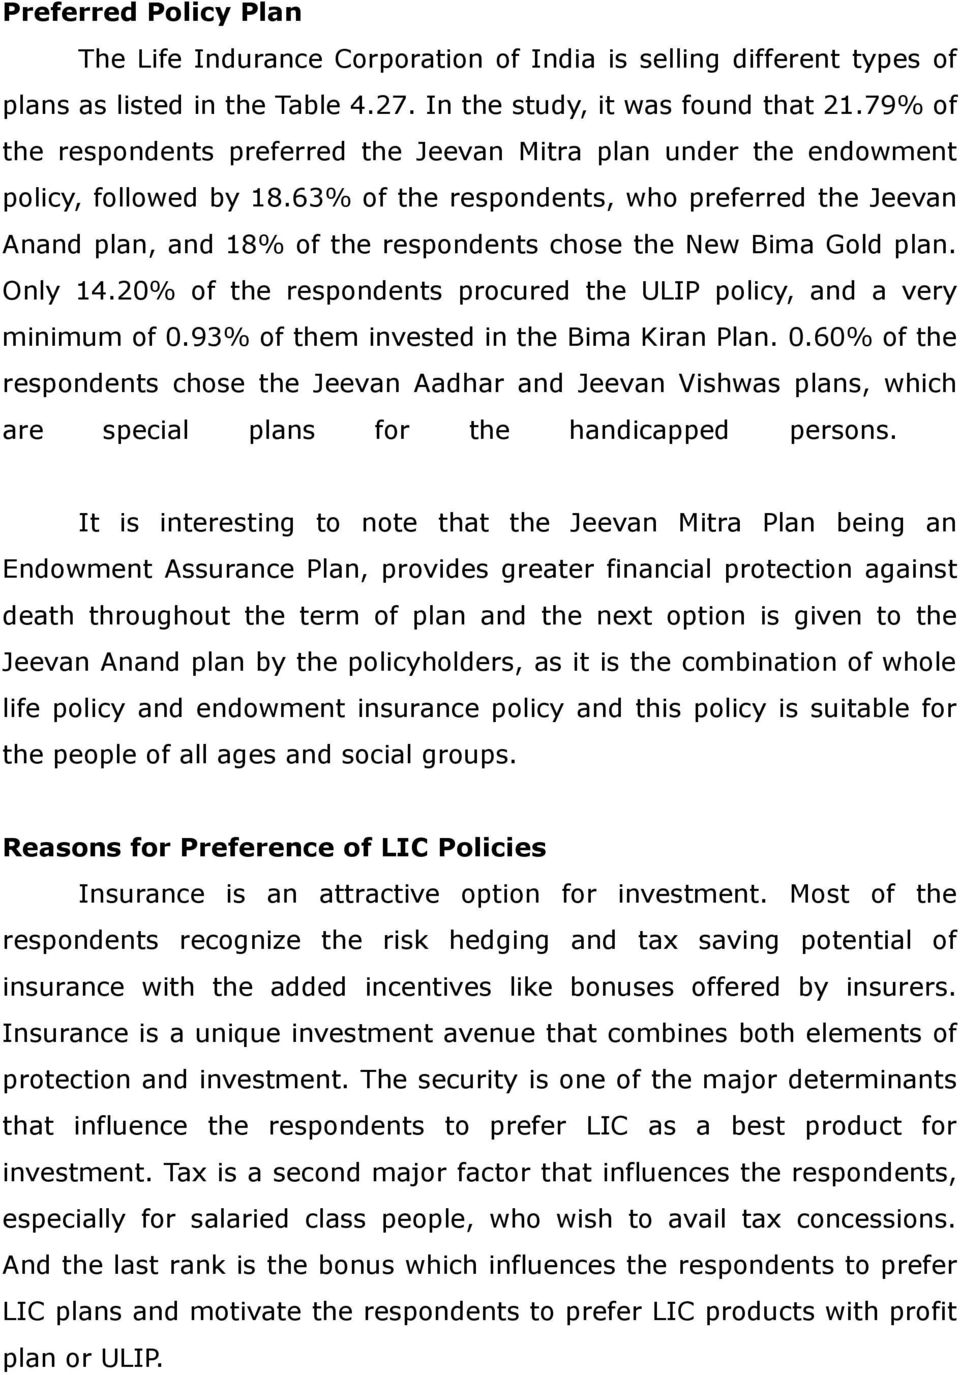 63% of the respondents, who preferred the Jeevan Anand plan, and 18% of the respondents chose the New Bima Gold plan. Only 14.20% of the respondents procured the ULIP policy, and a very minimum of 0.